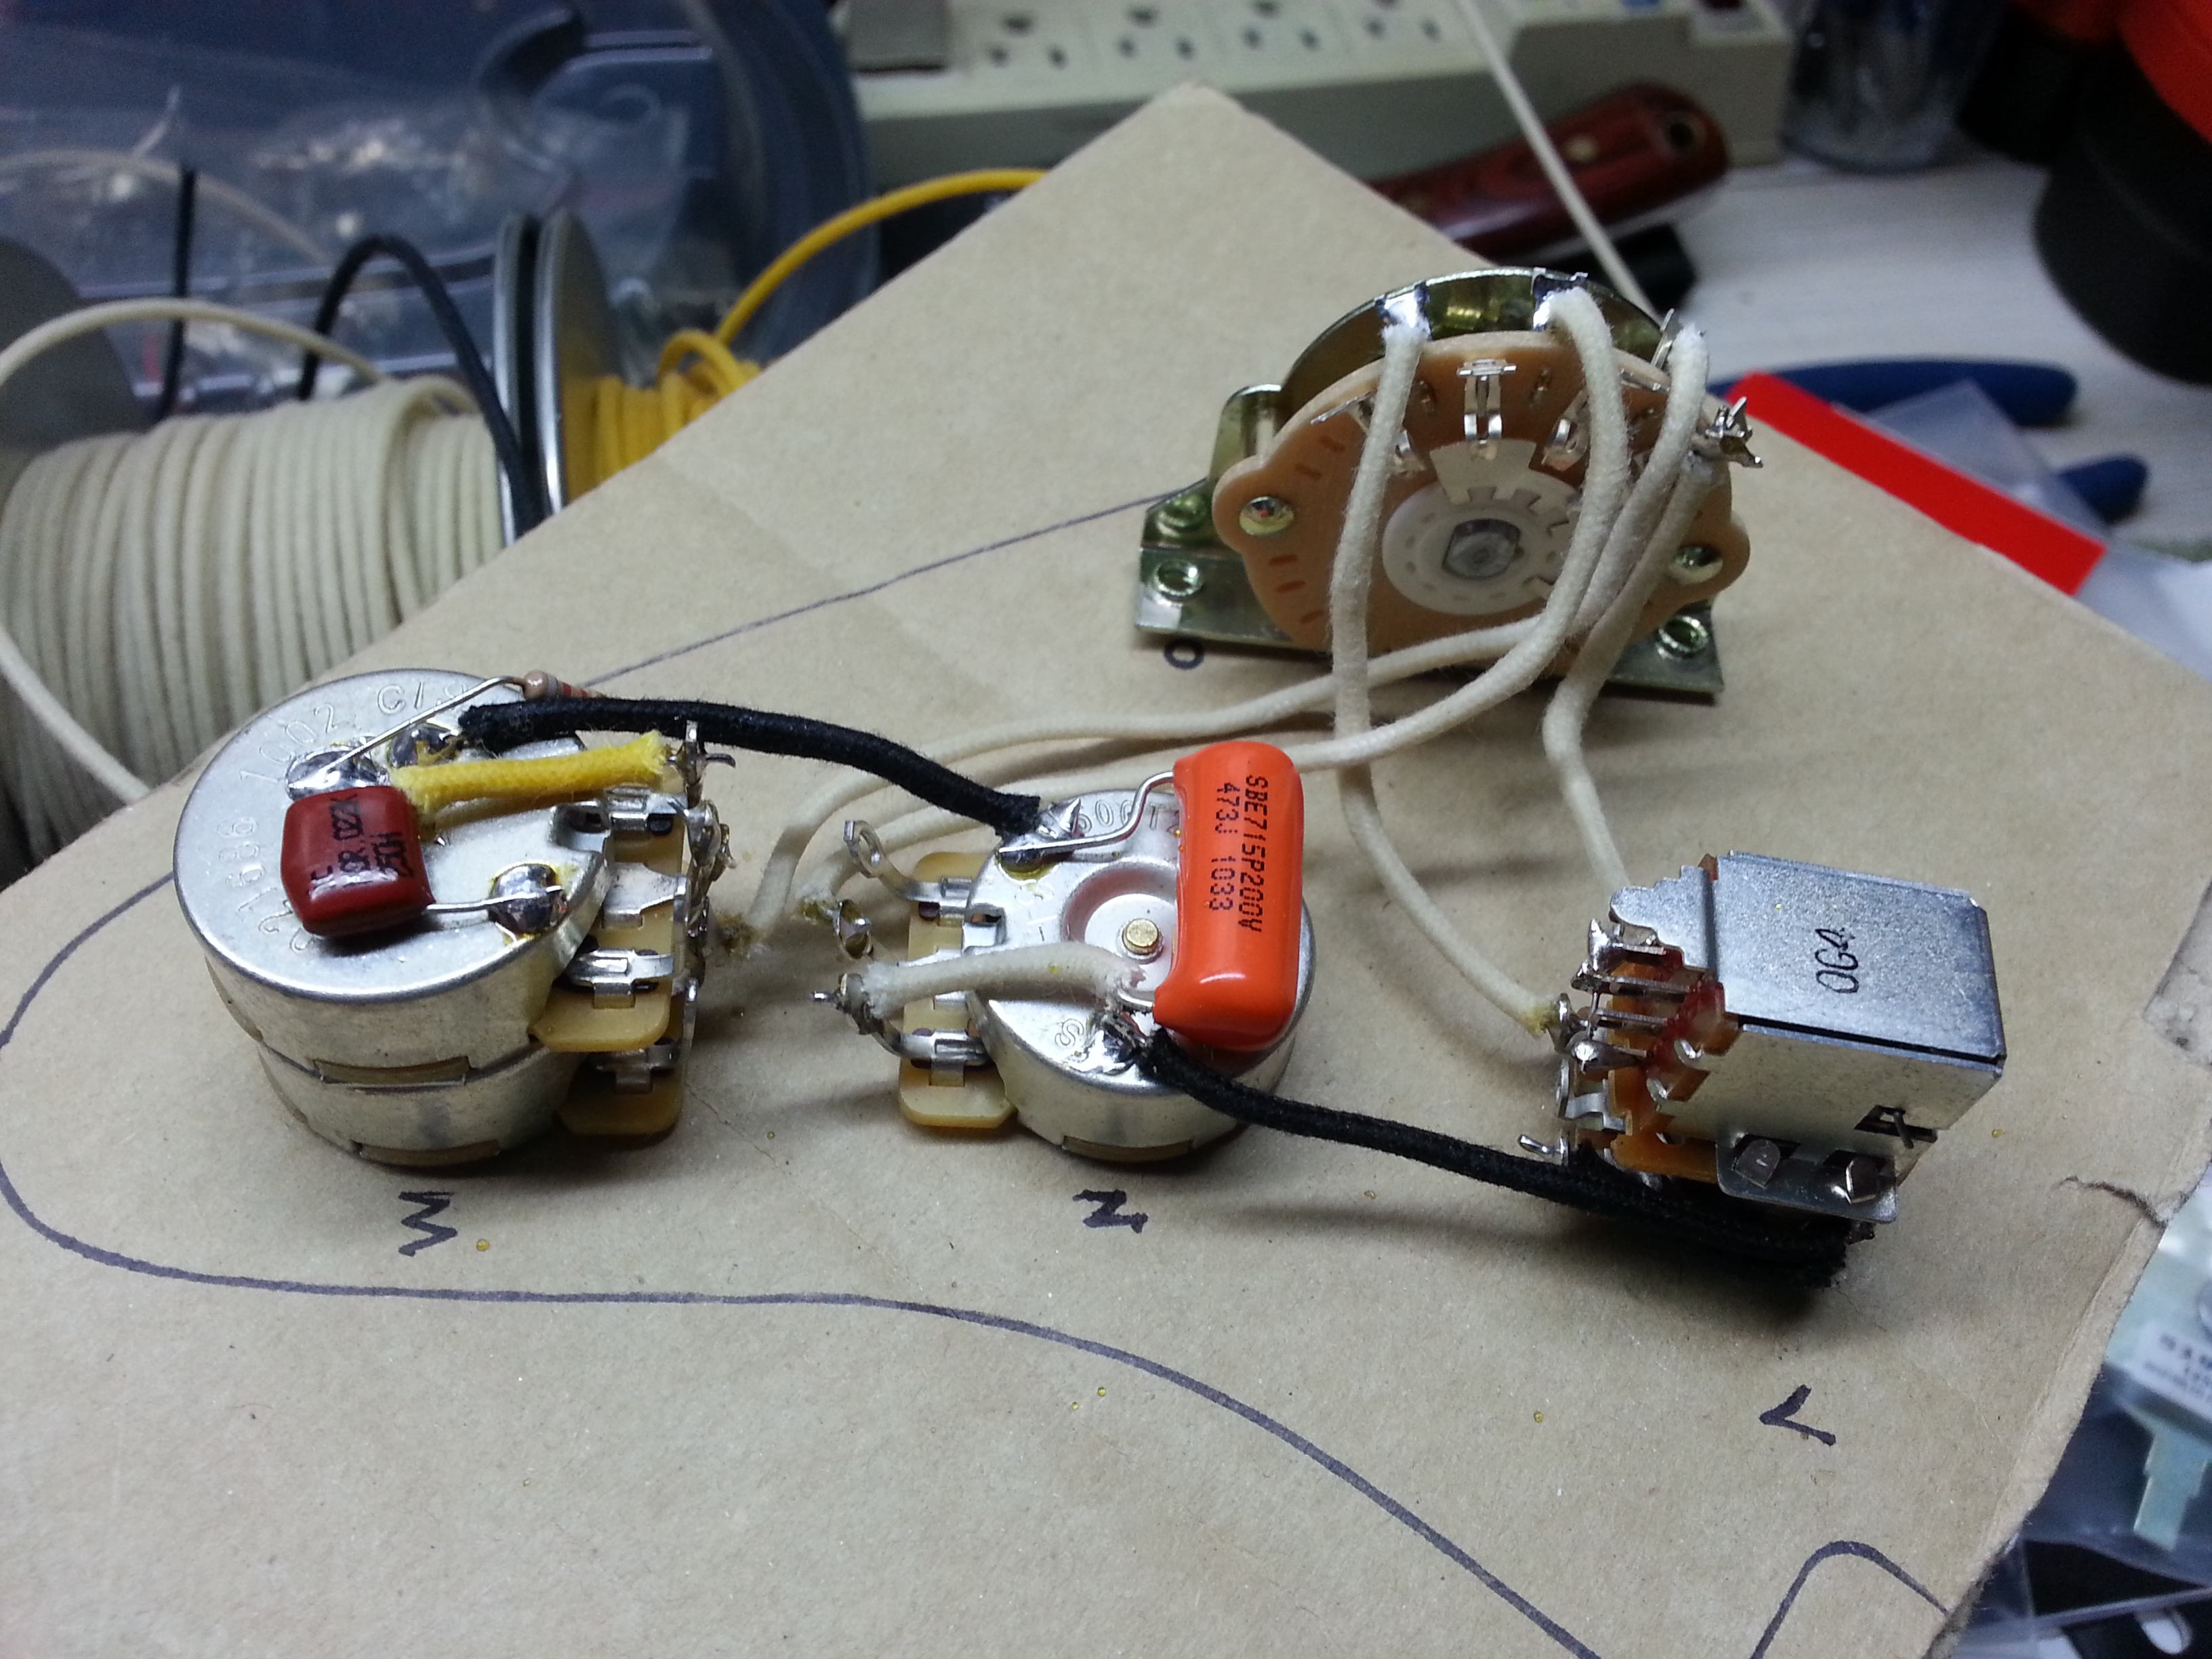 Wiring Diagram Together With Strat Bridge Tone Control Wiring Diagram